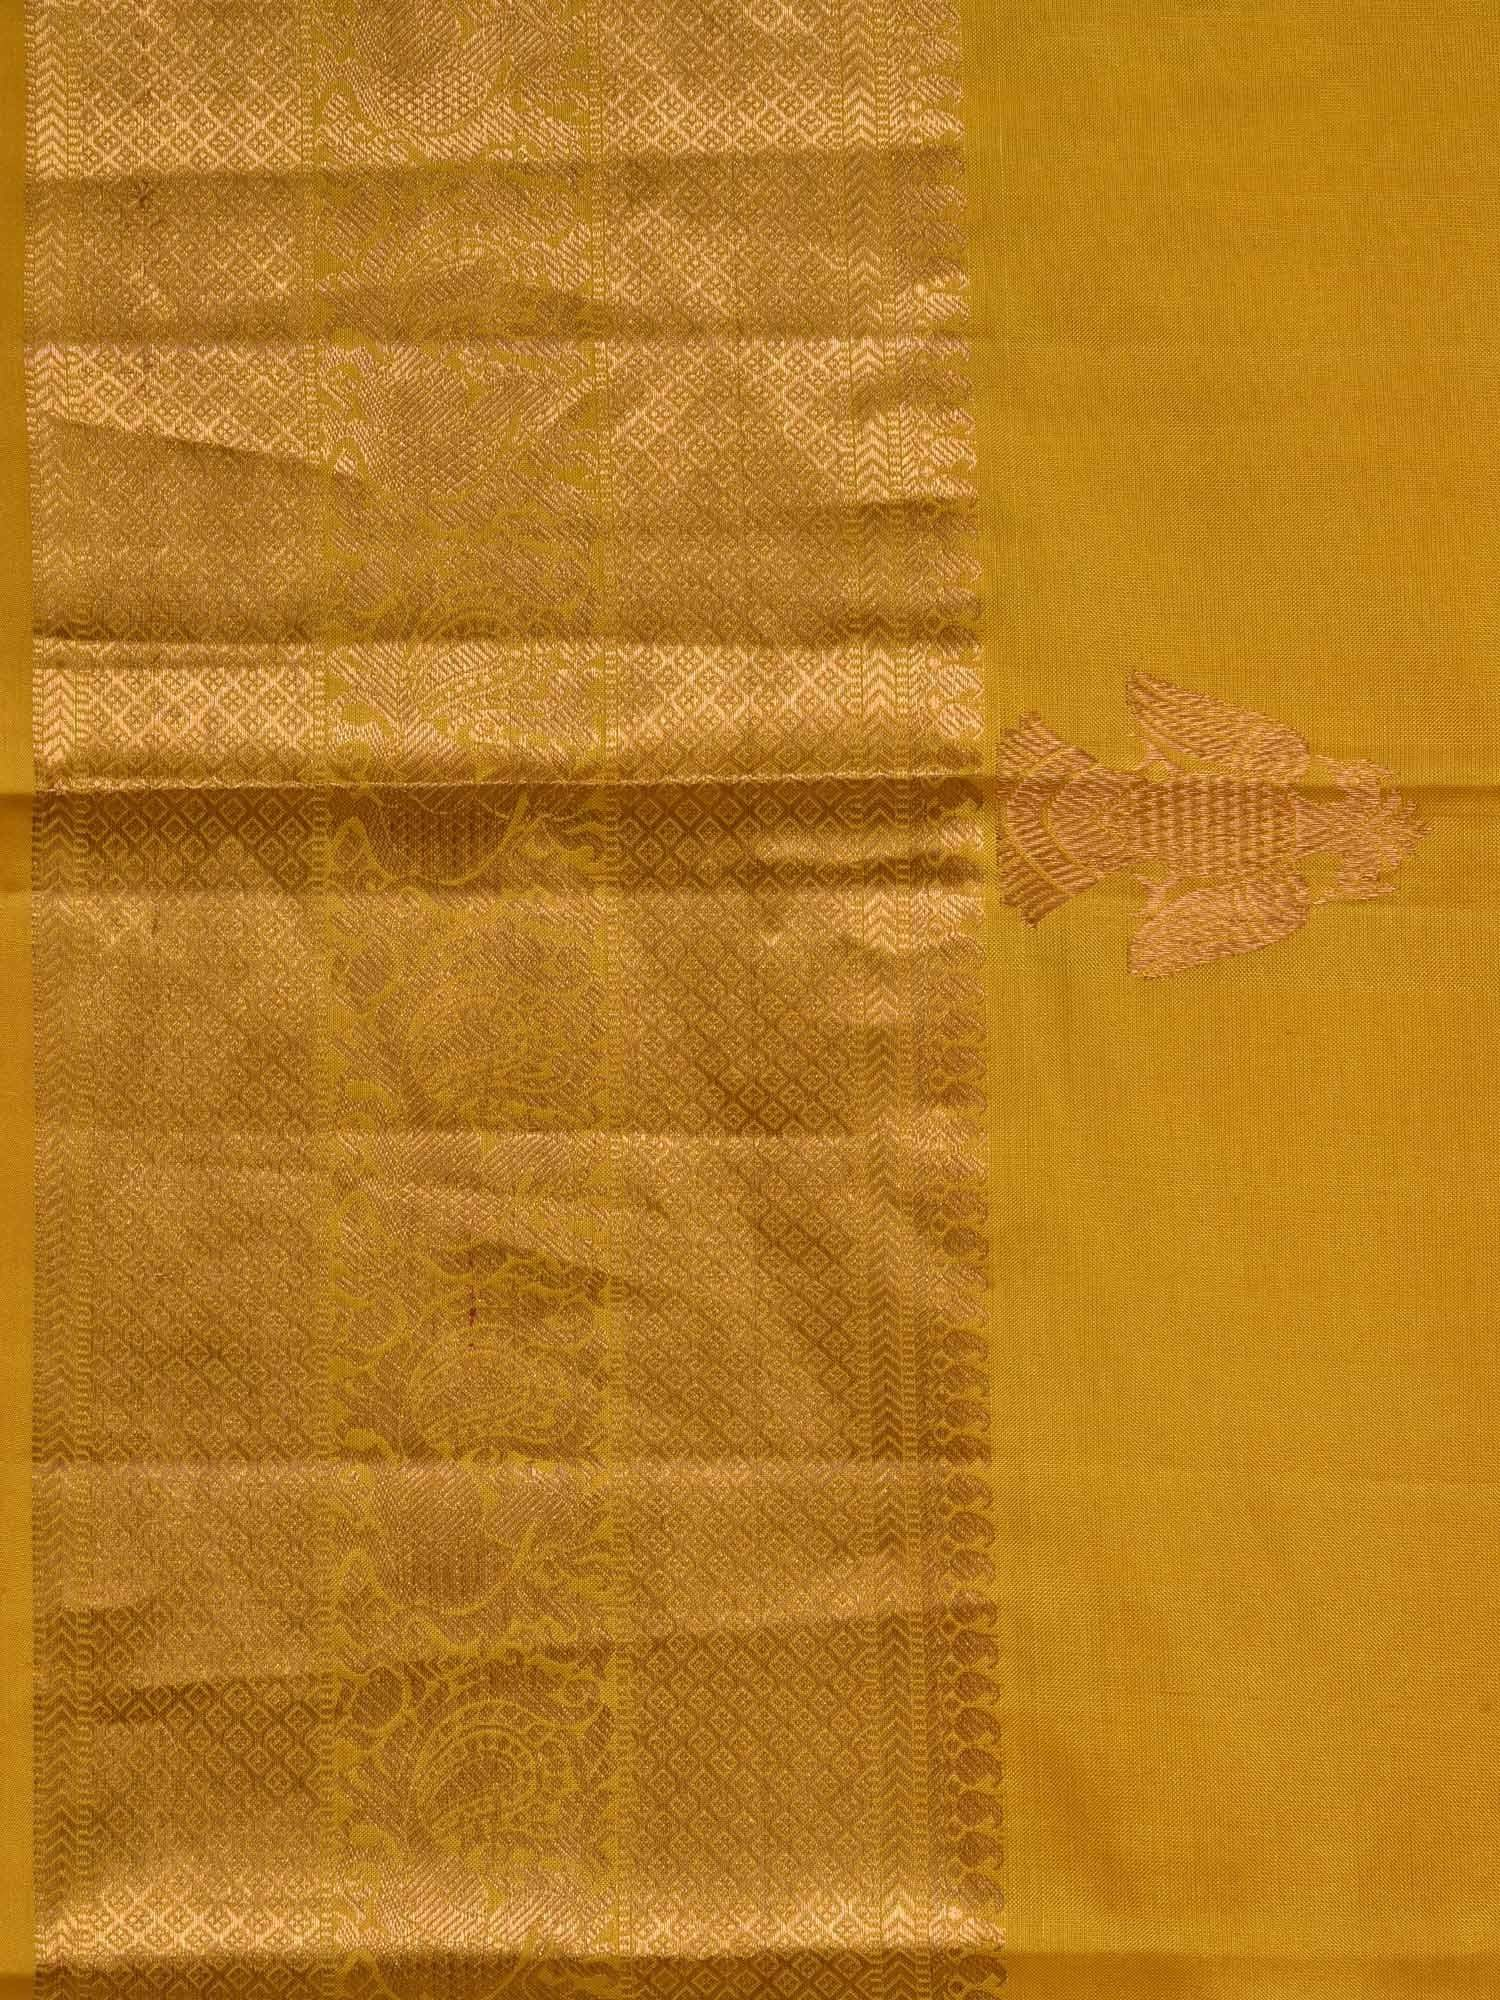 Mustard Kanchipuram Silk Handloom Saree with Corner and Buta Gandaberunda Design K0423